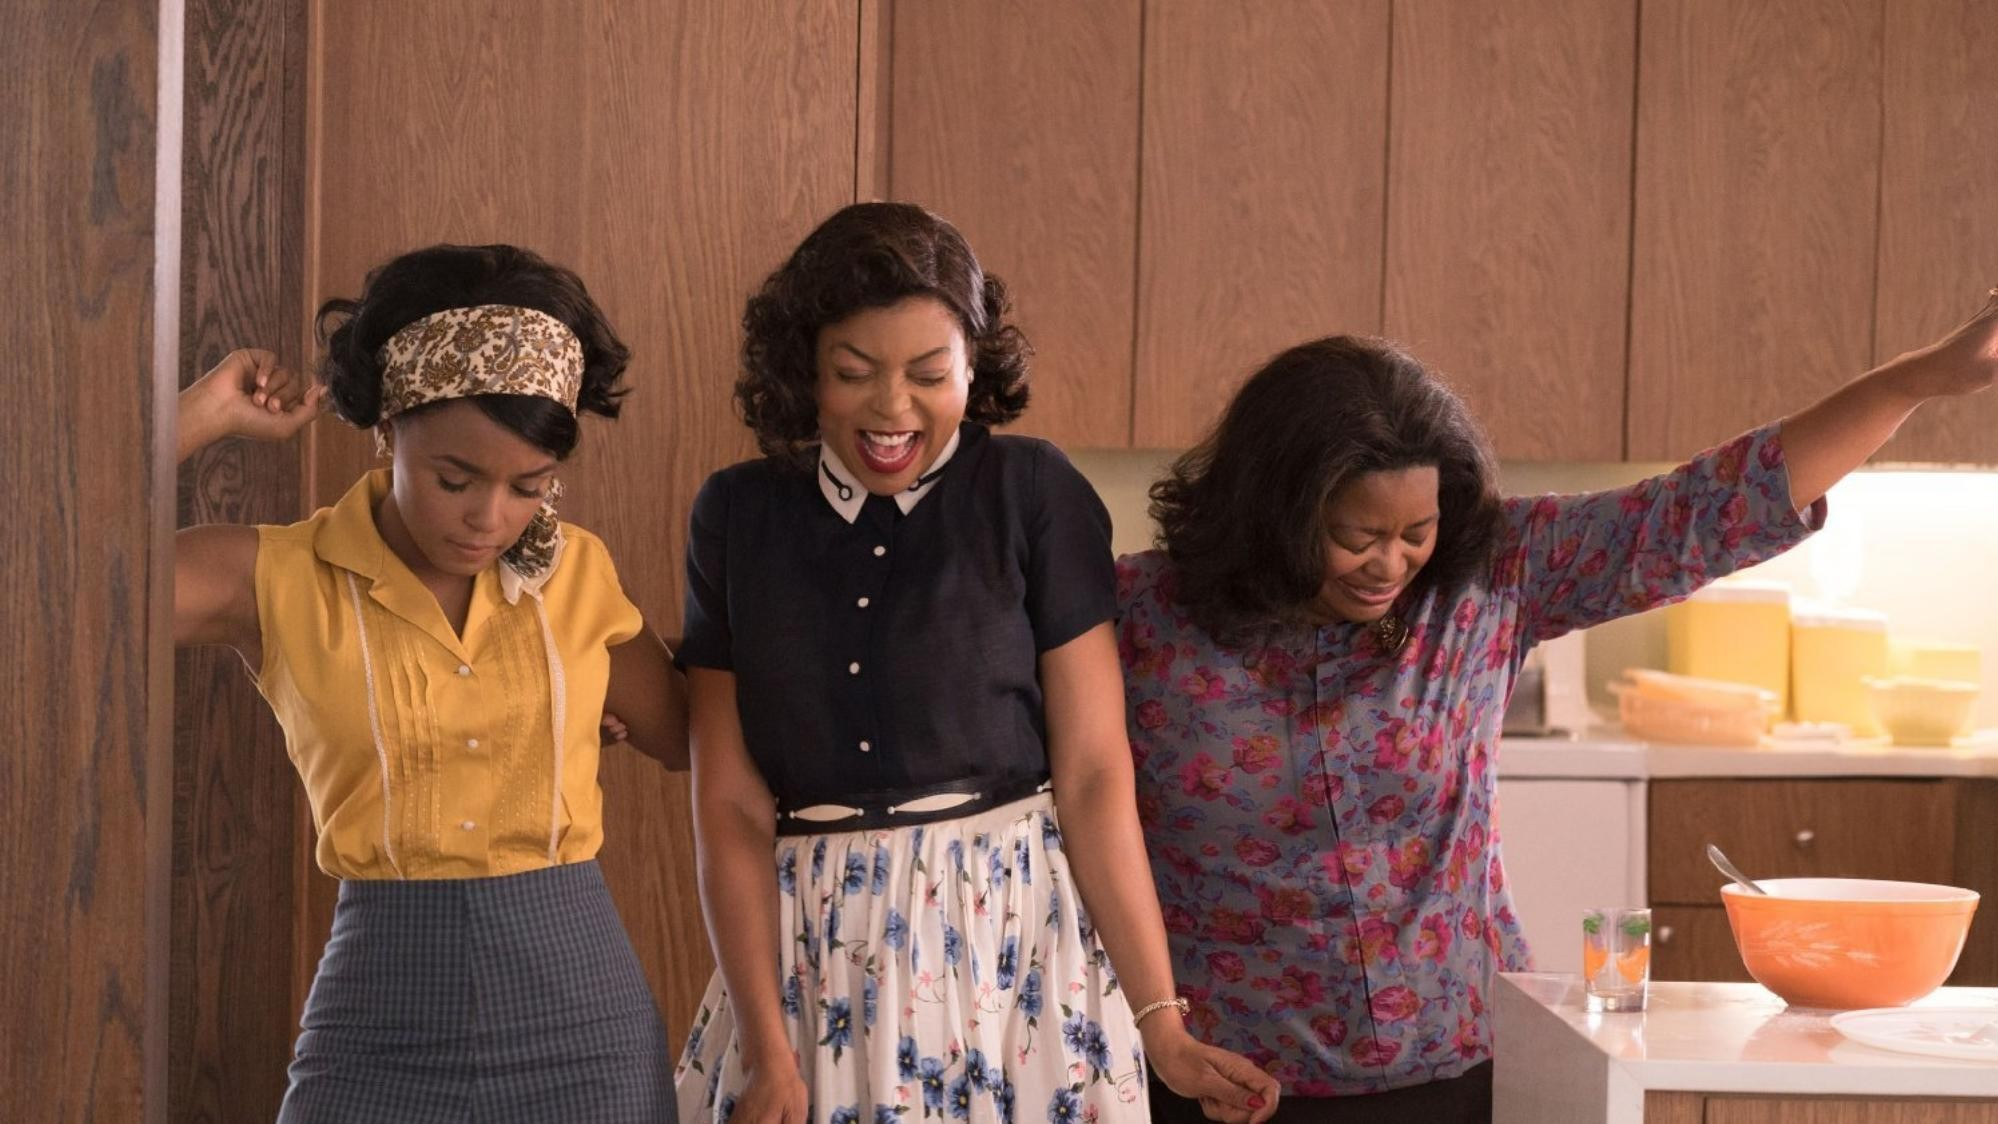 'hidden figures' overtakes 'la la land' as the oscars' highest grossing best picture nominee